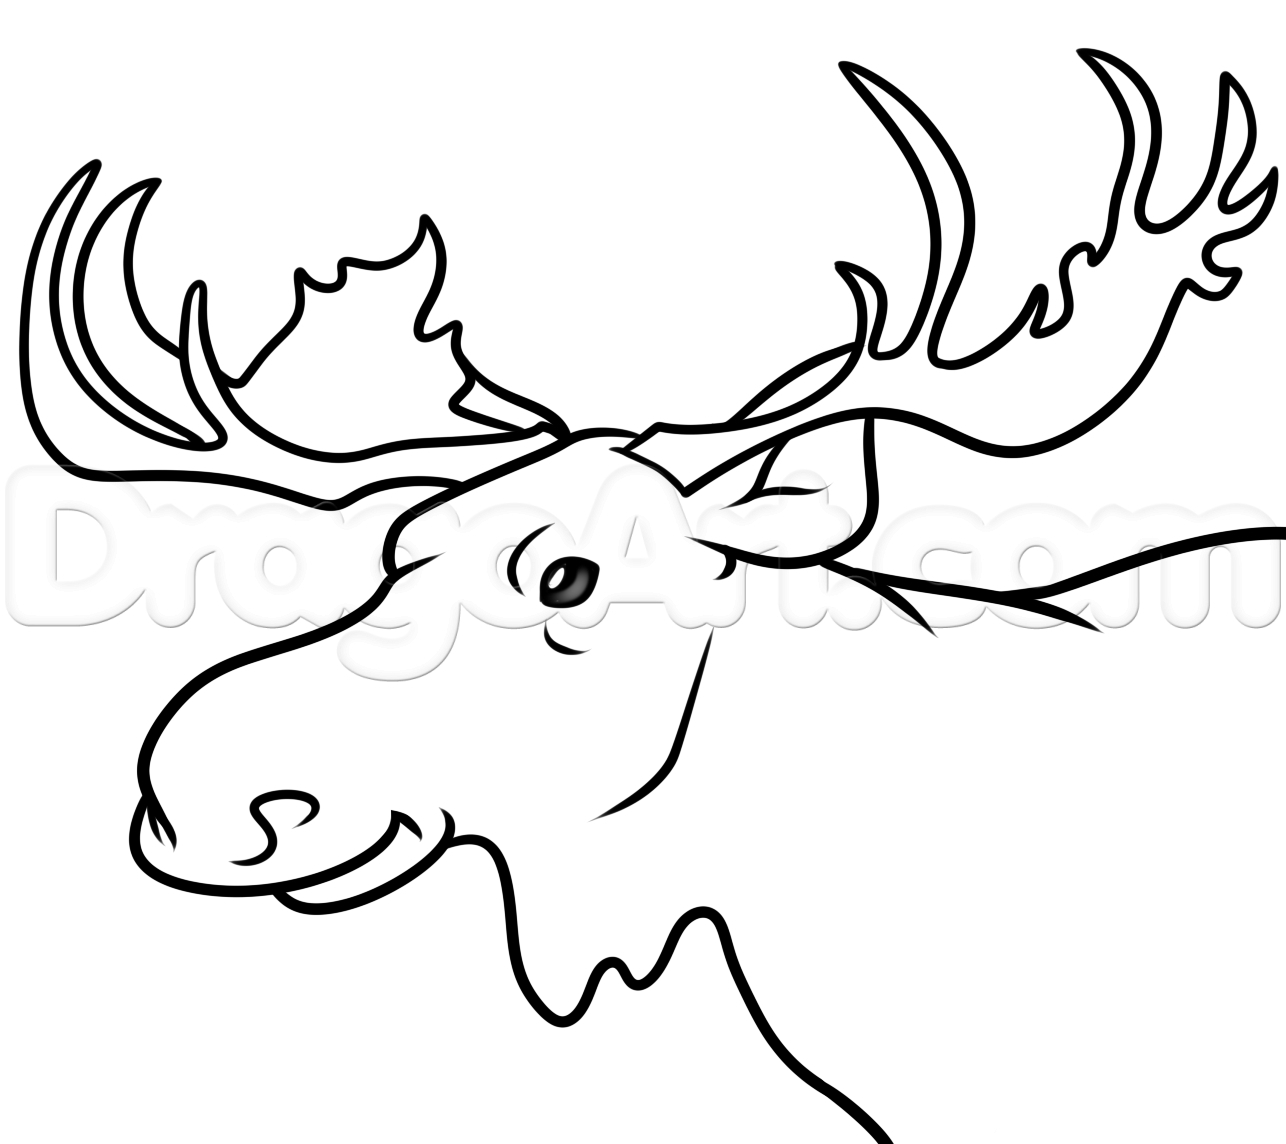 1286x1144 Drawing Of A Moose Drawing Drawing Of A Moose 63 For Your Free